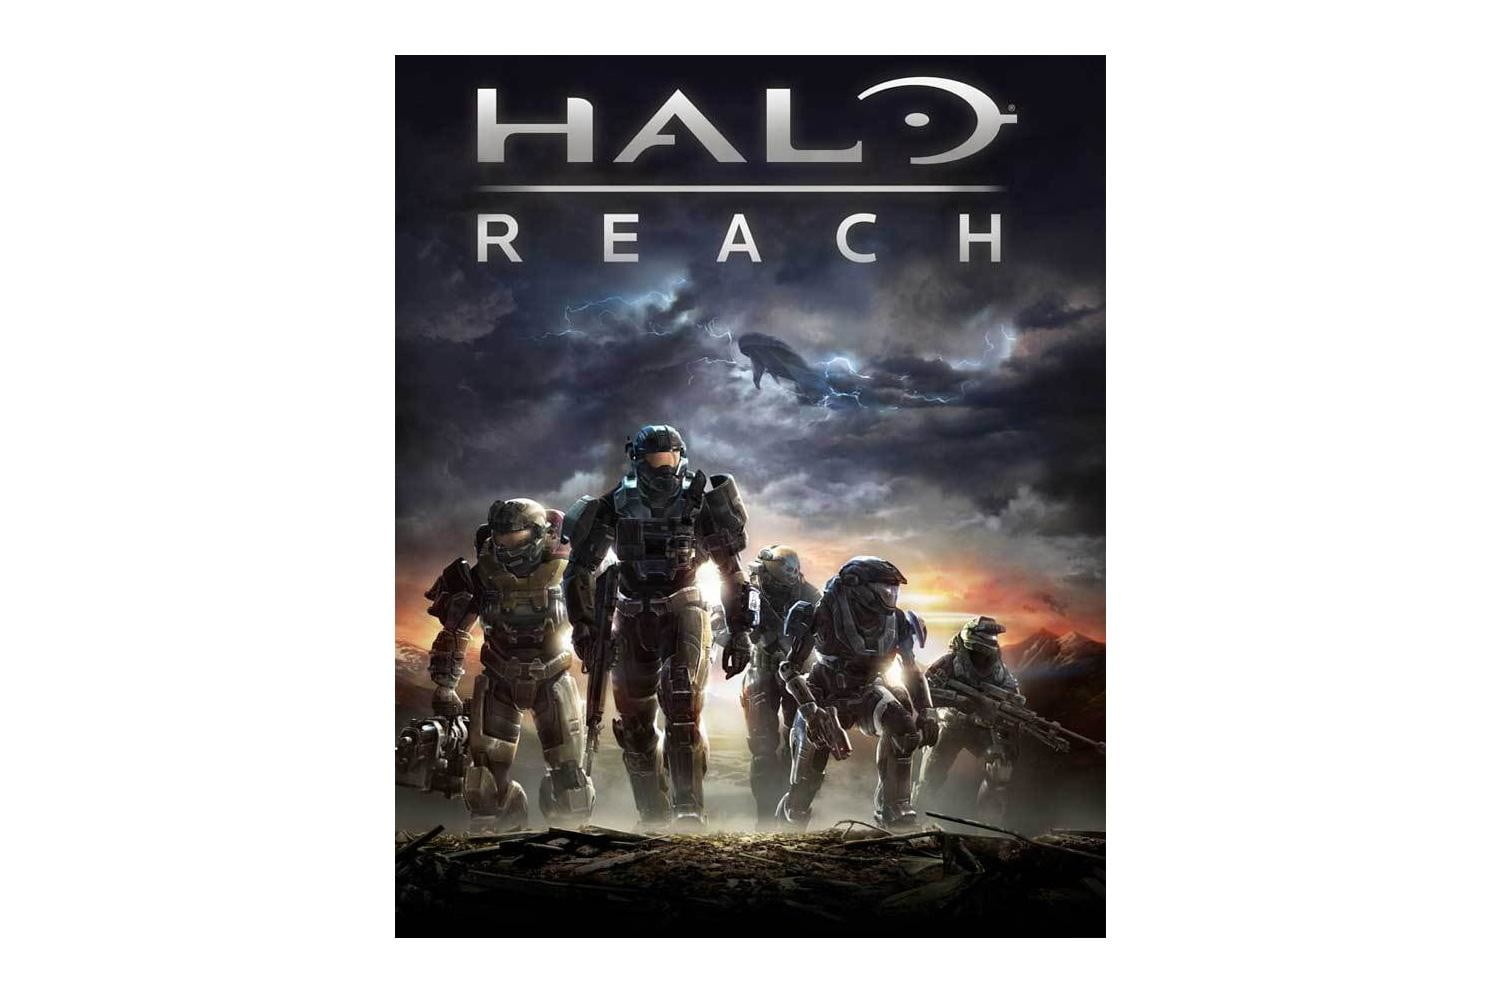 Halo-Reach-cover-art